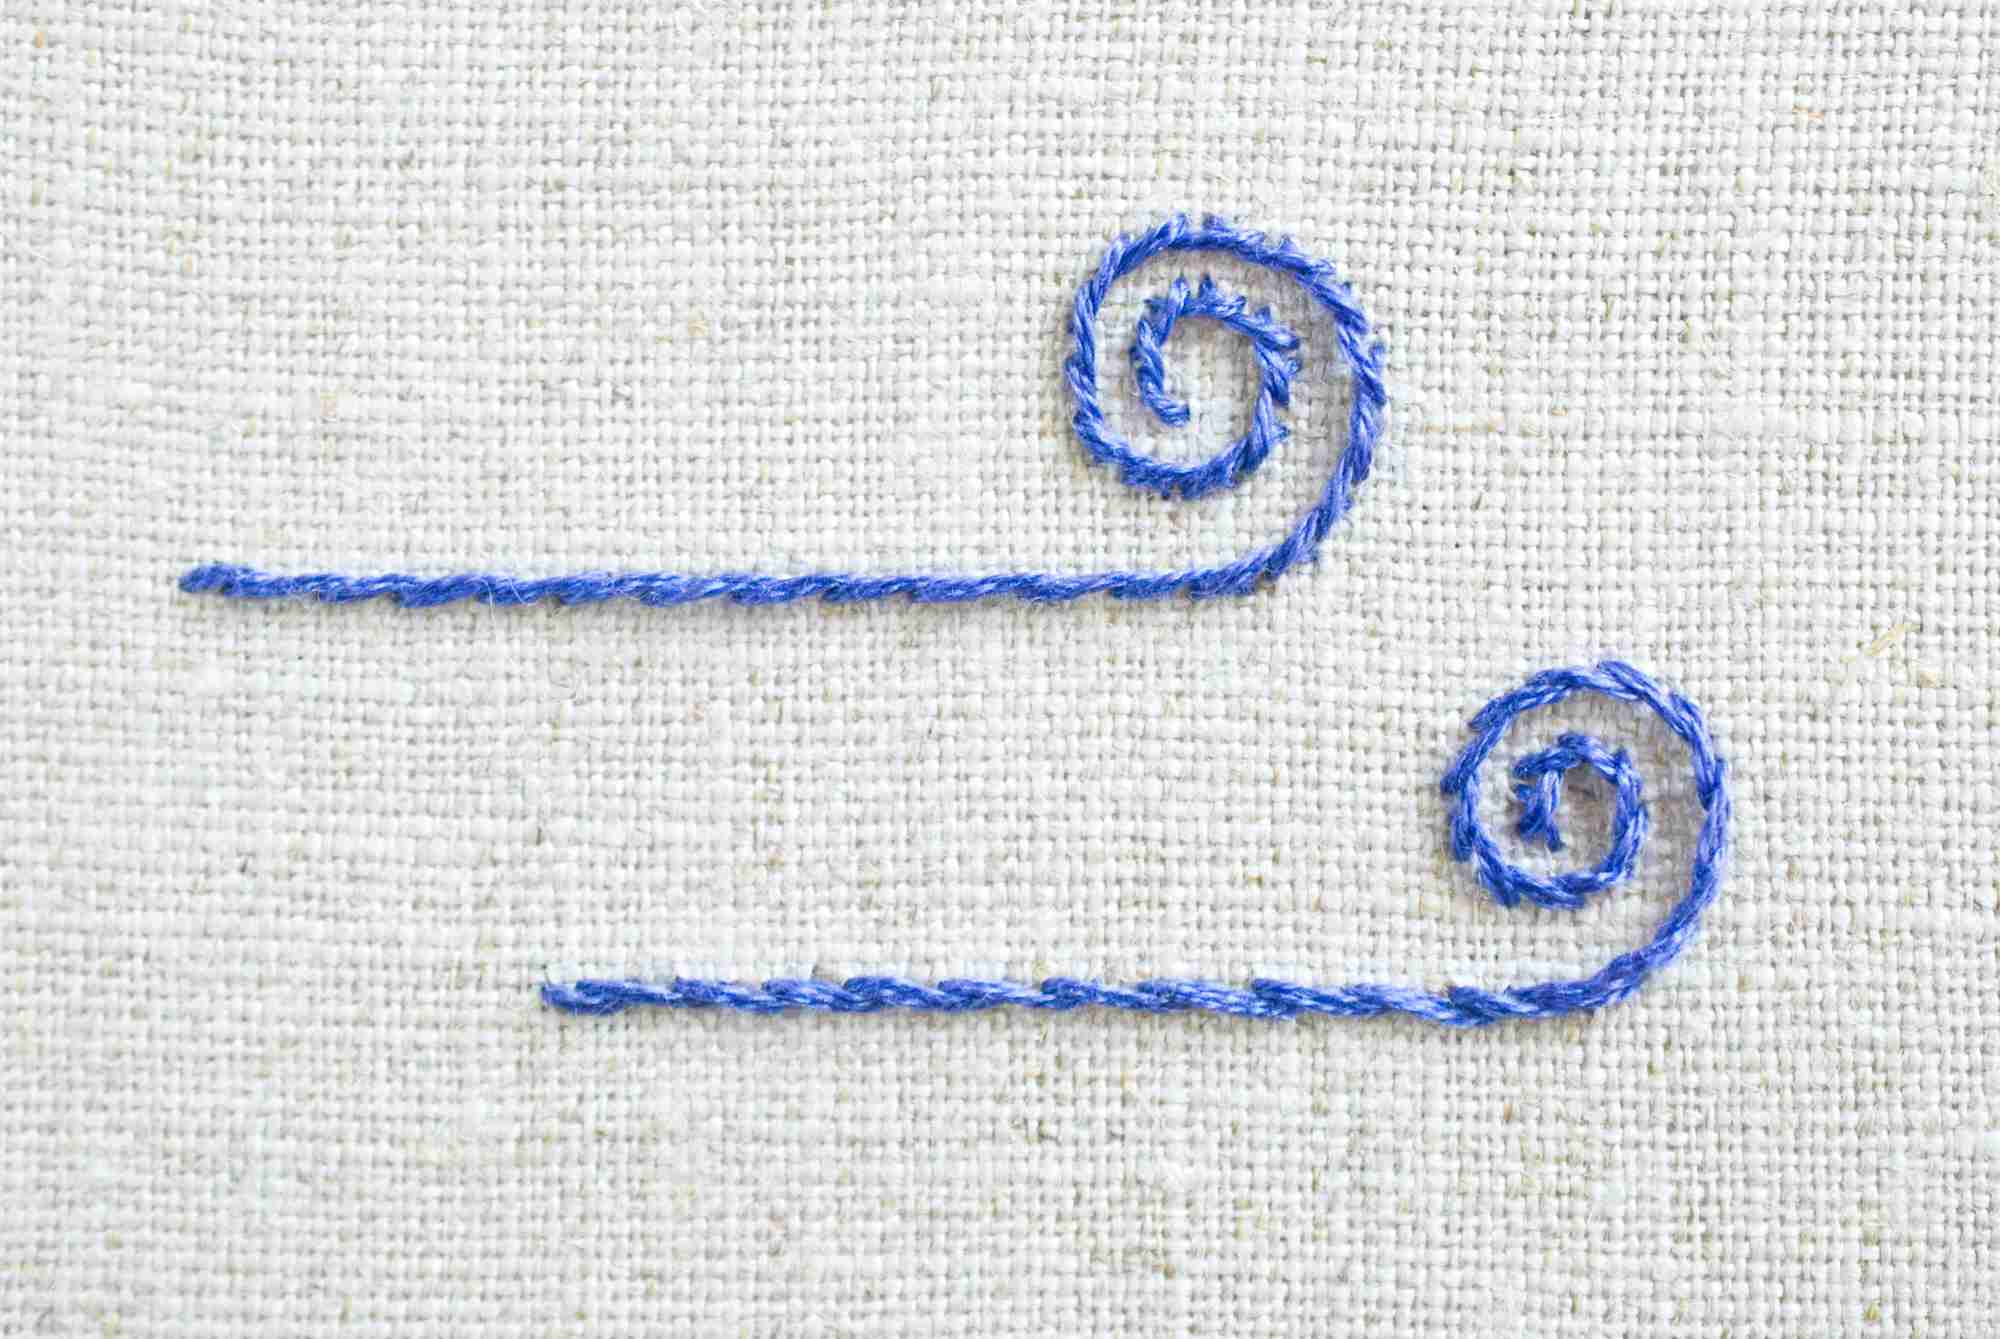 Side-by-side comparison of outline and stem stitch